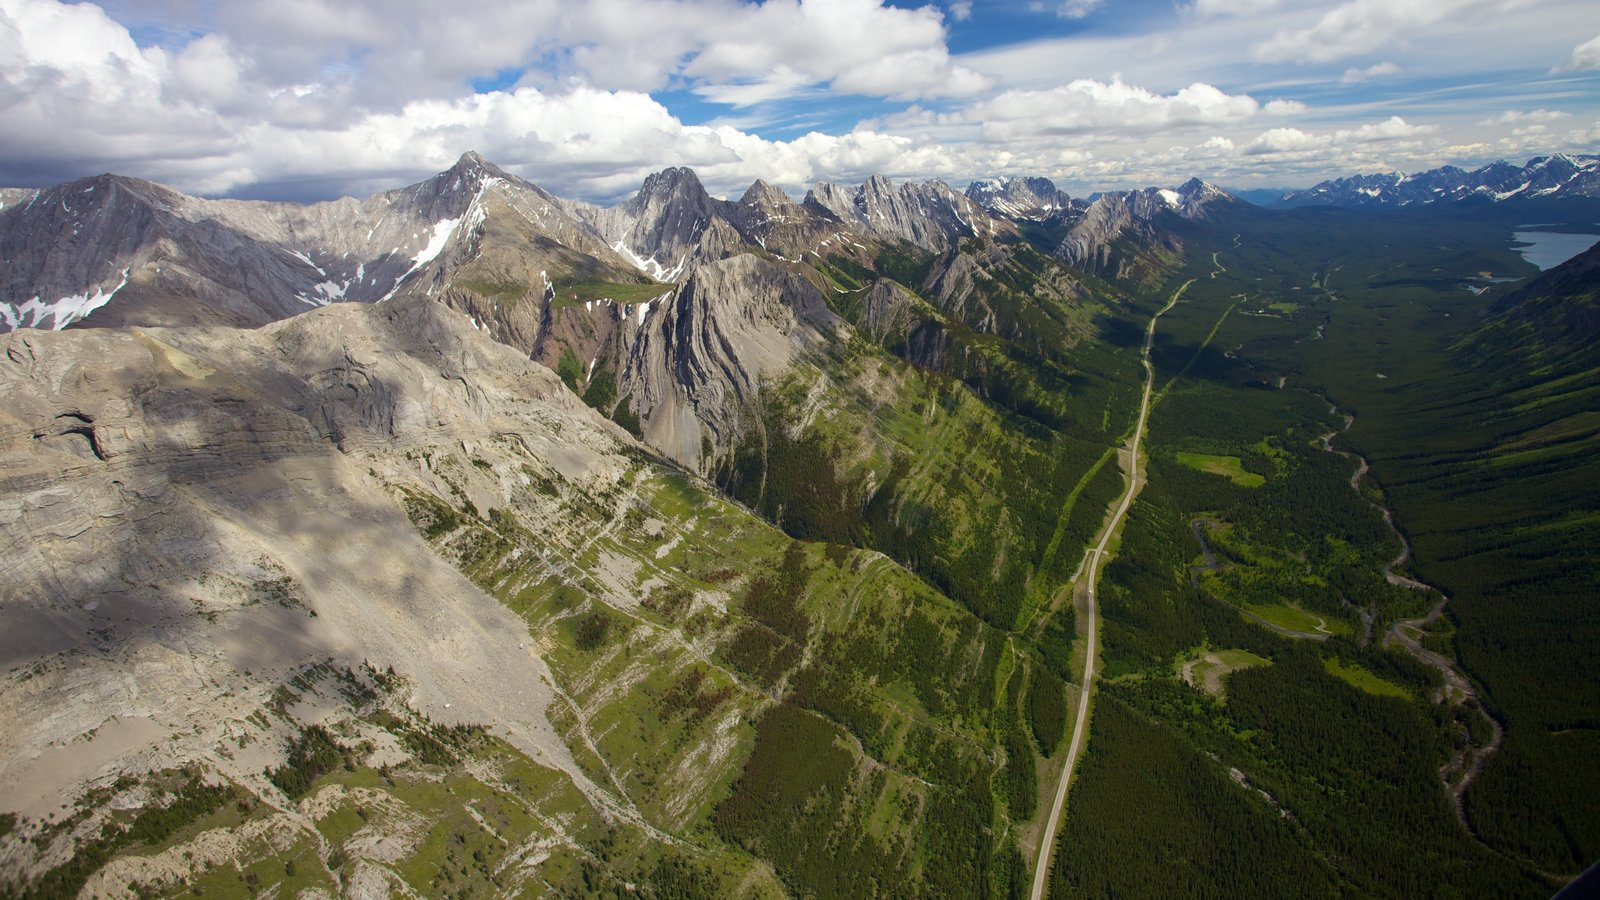 Icefields Parkway featuring tranquil scenes, mountains and landscape views